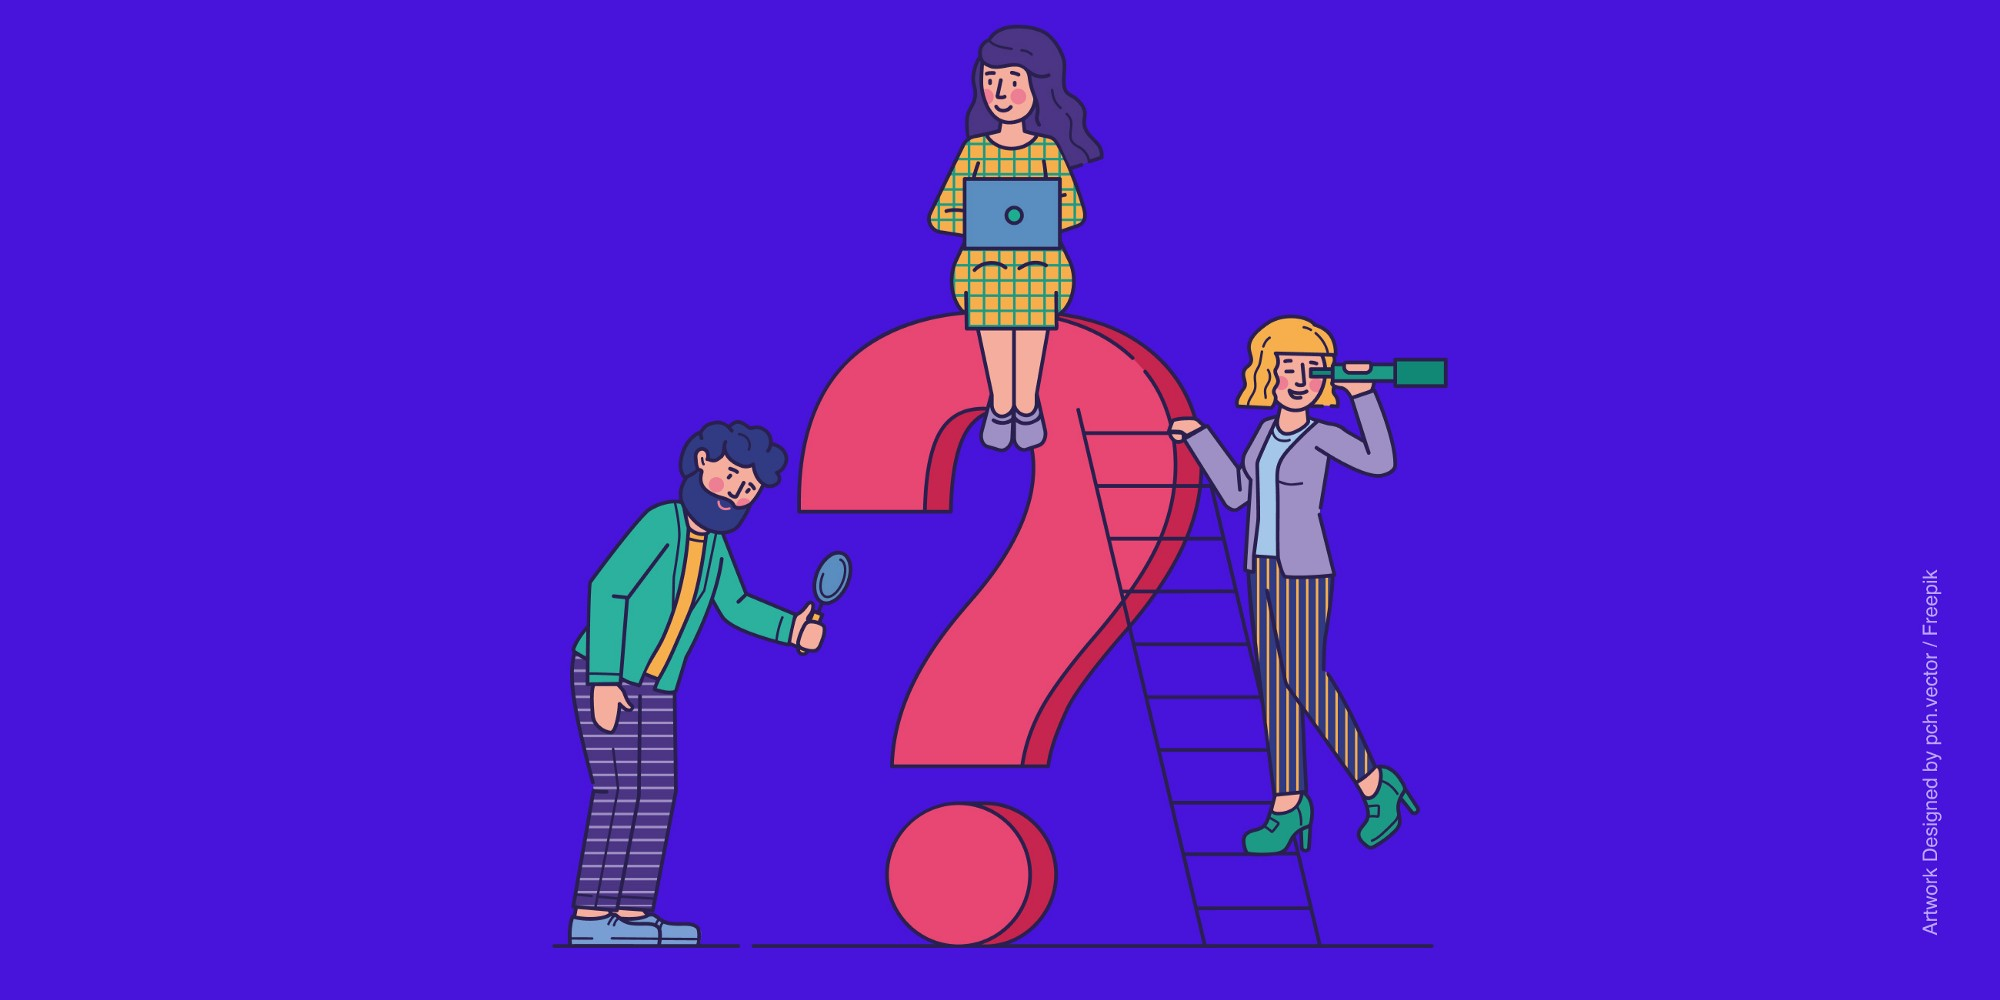 Three Human illustrations near a Question Mark depicting a stakeholders meeting